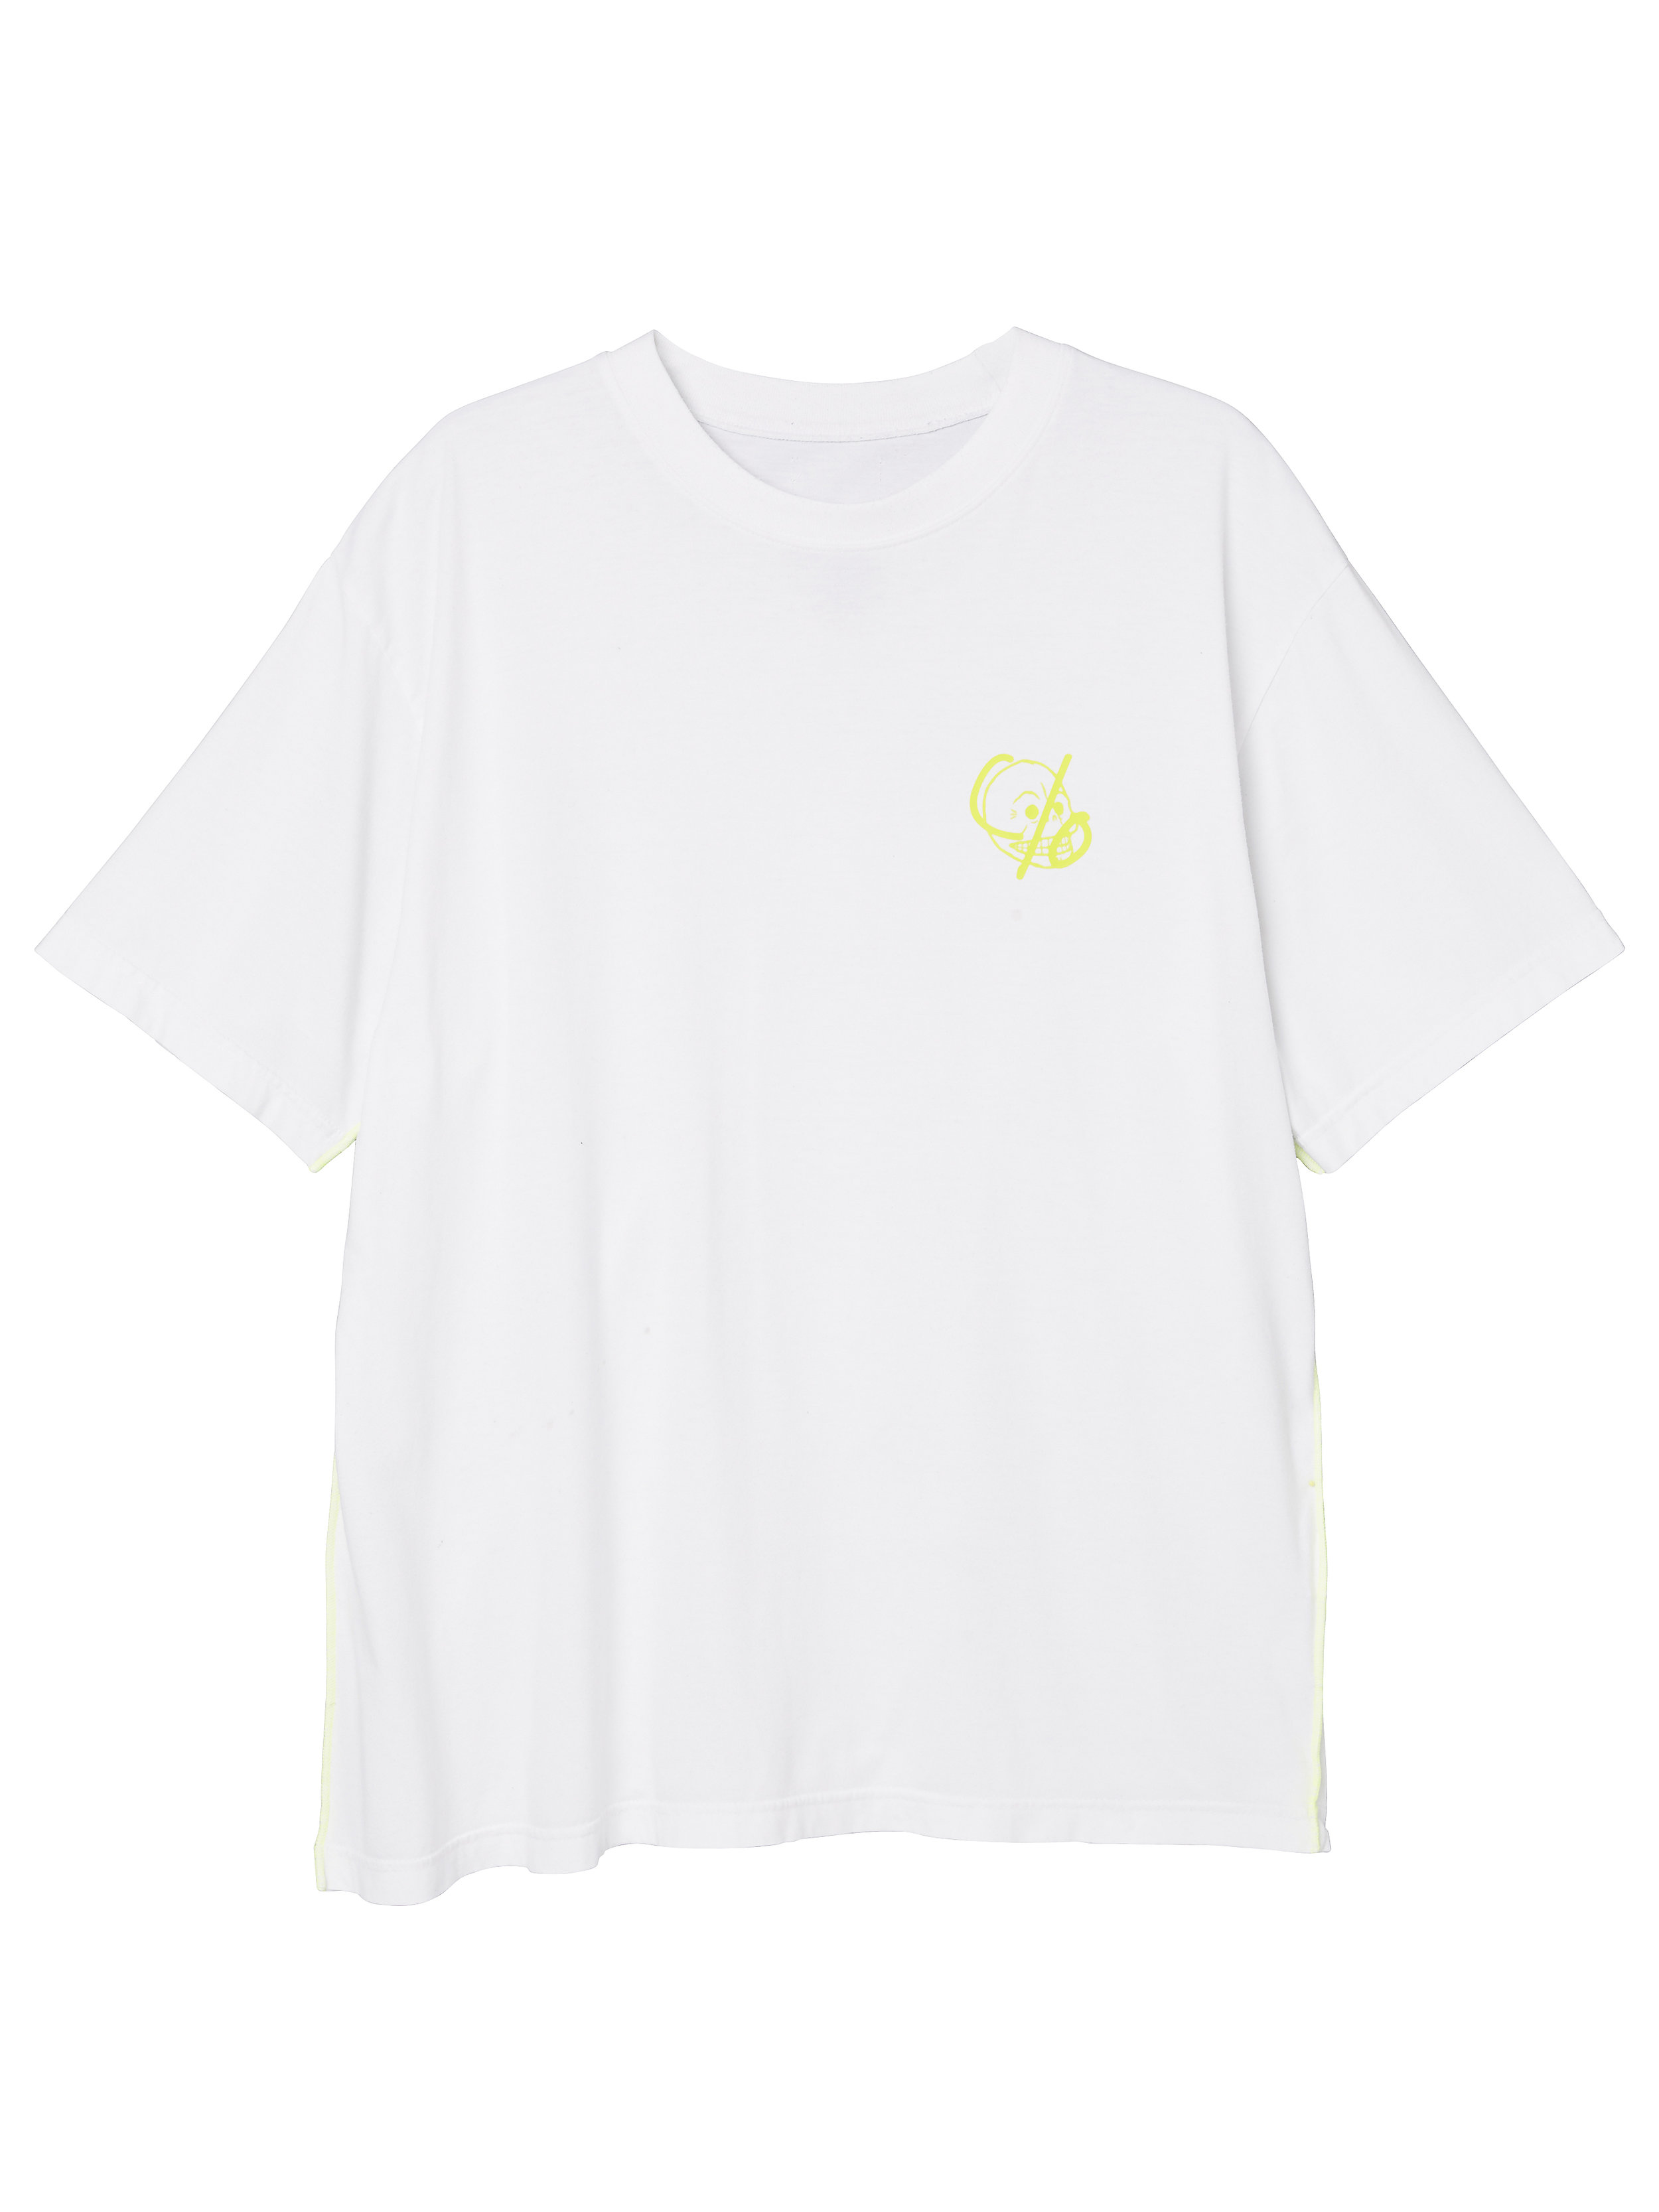 0643912_RESCUED_T-SHIRT_Used_white.jpg